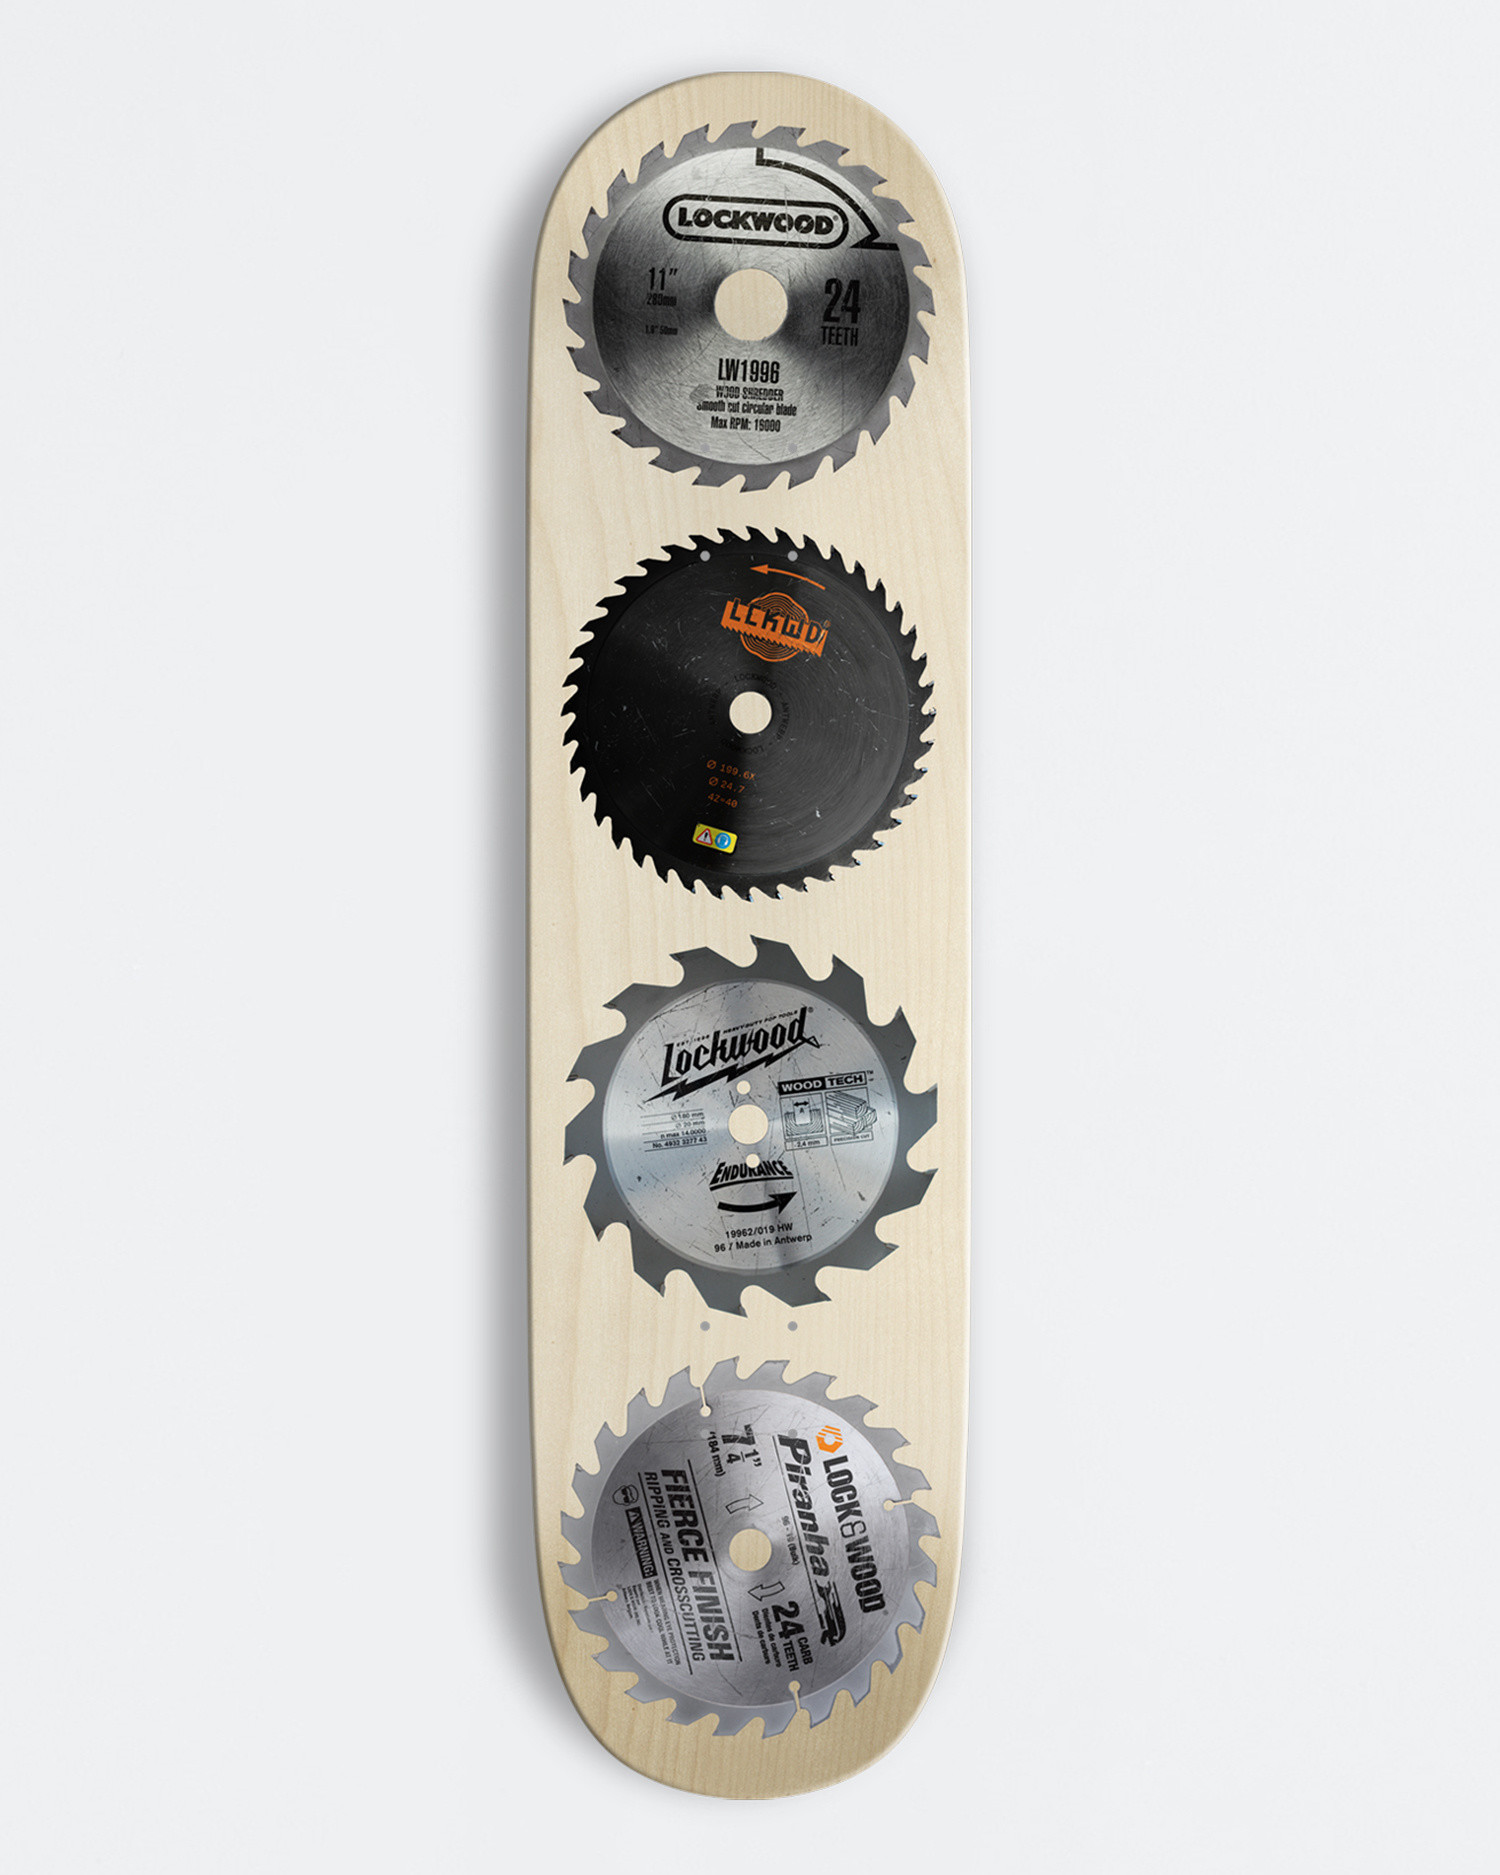 Lockwood Deck Sawblades 7.75""